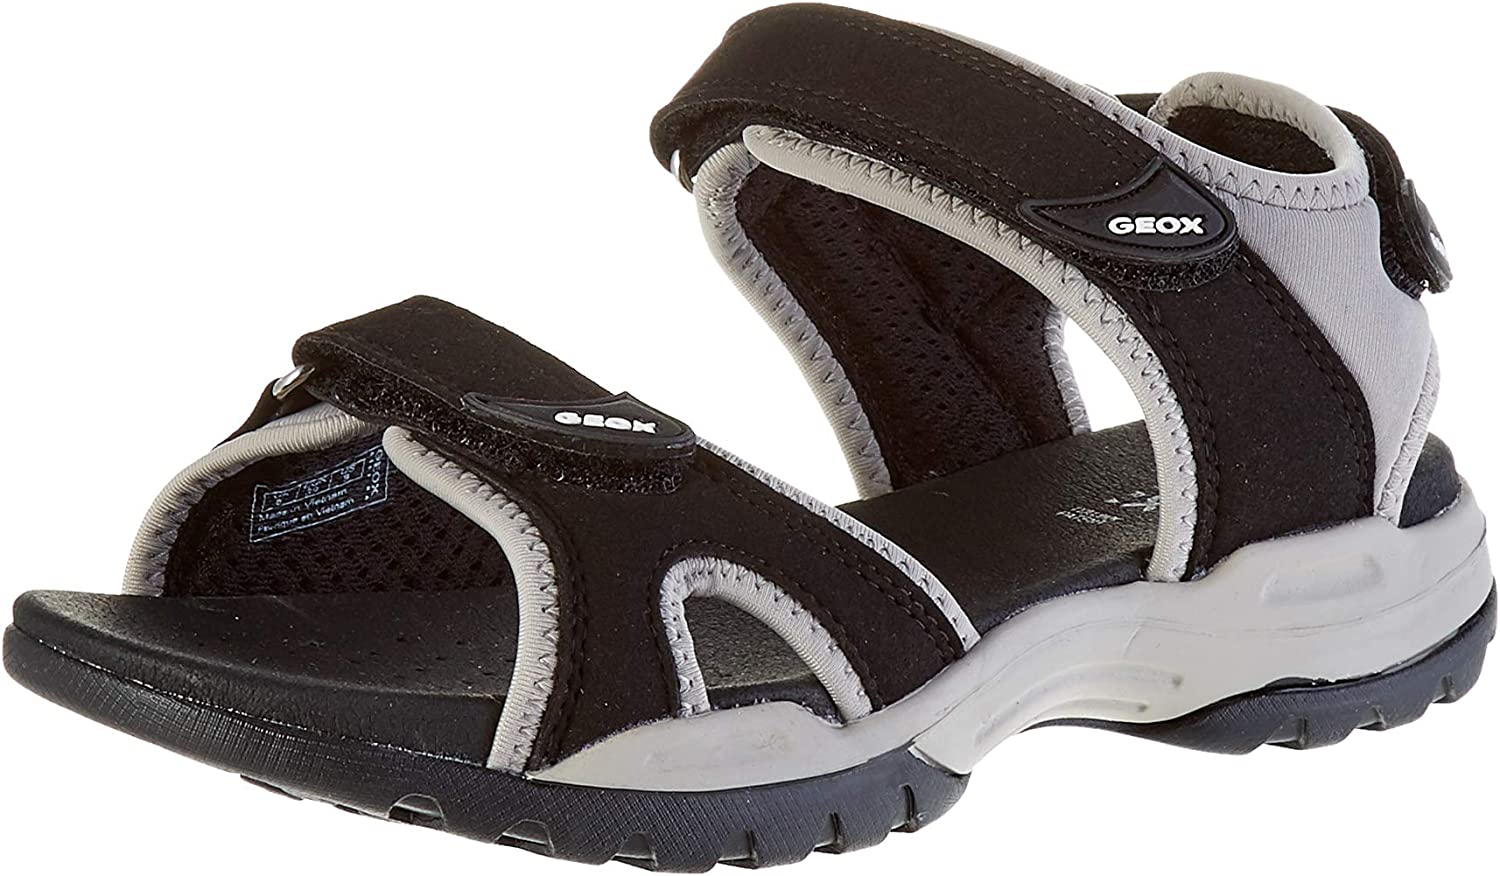 Max Tucson Mall 63% OFF Geox Women's Ankle Strap Lt Sandals Grey